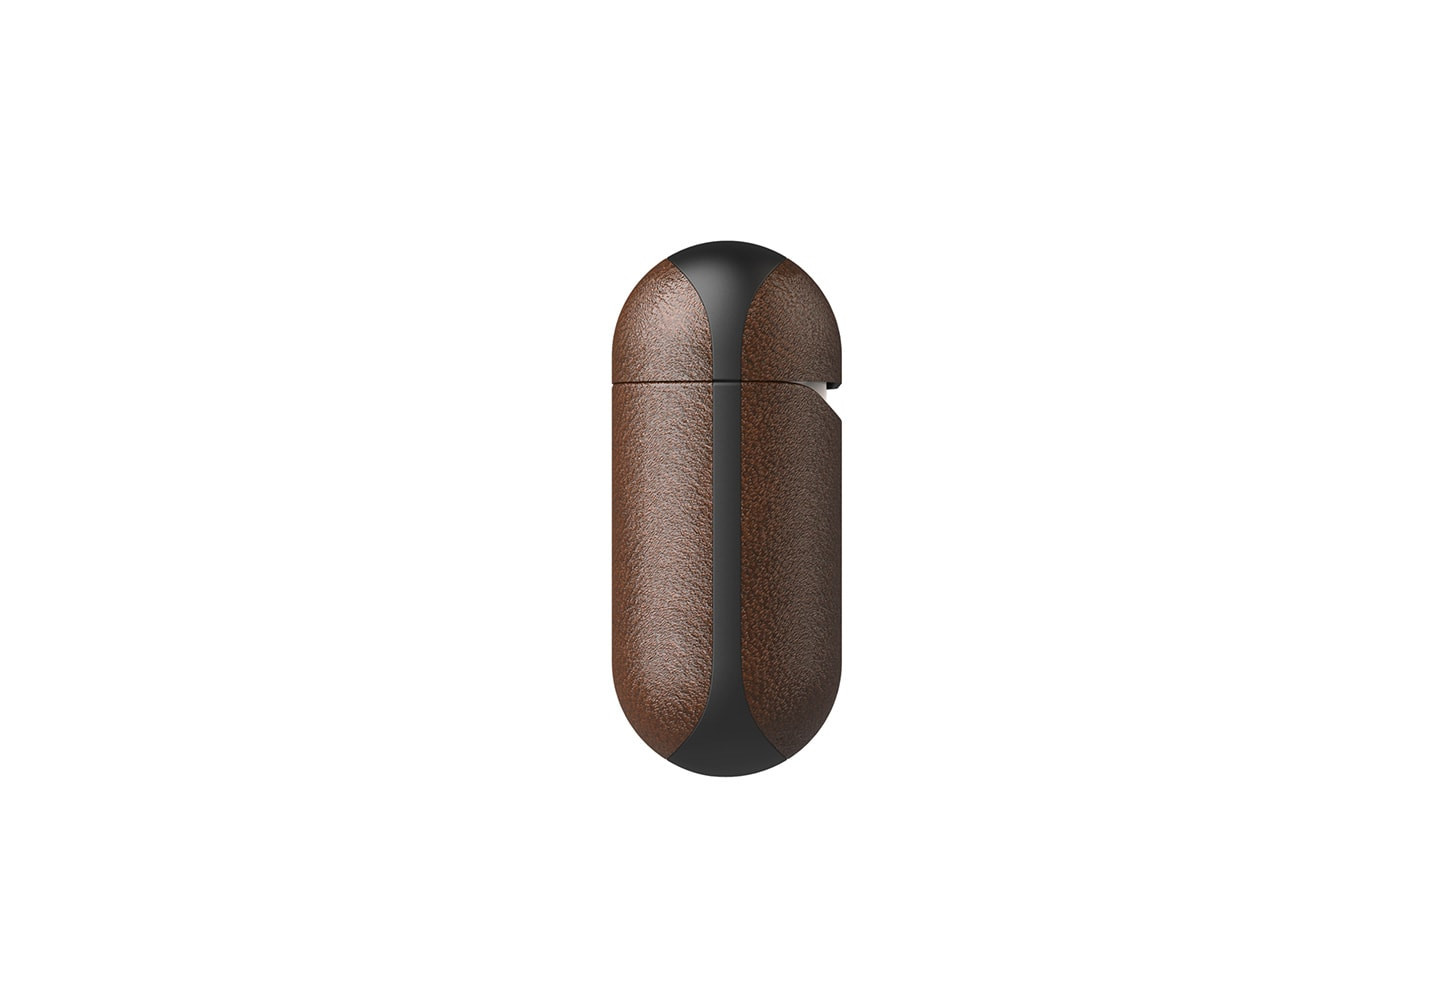 nomad-airpods-case-brown-4.jpg